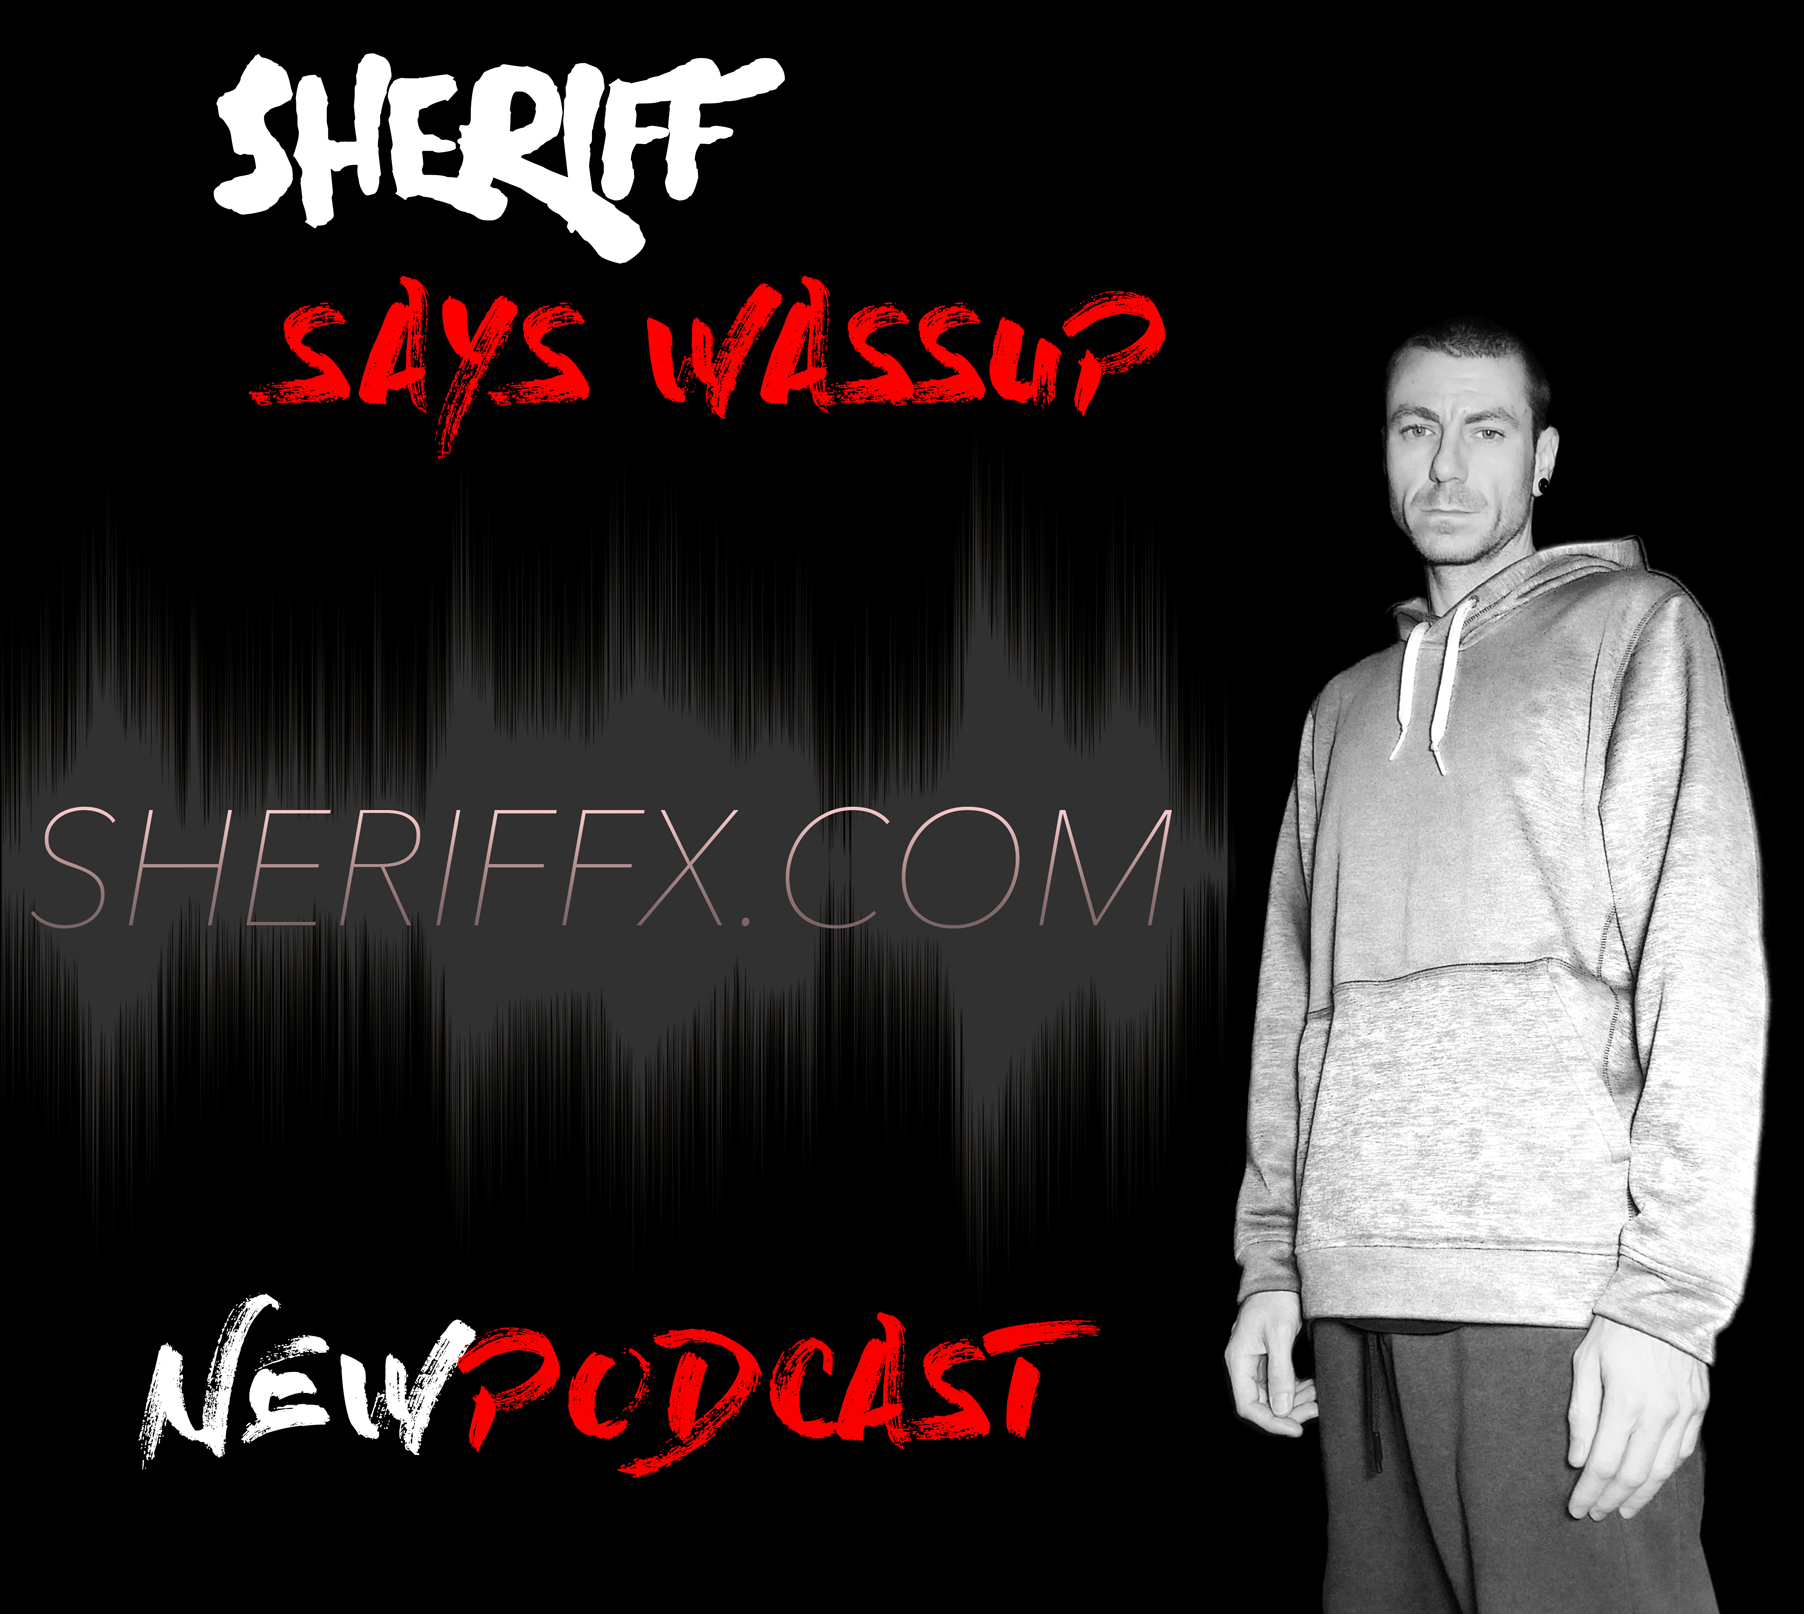 SHERIFF-SAYS-WASSUP-NEW-PODCAST.jpg